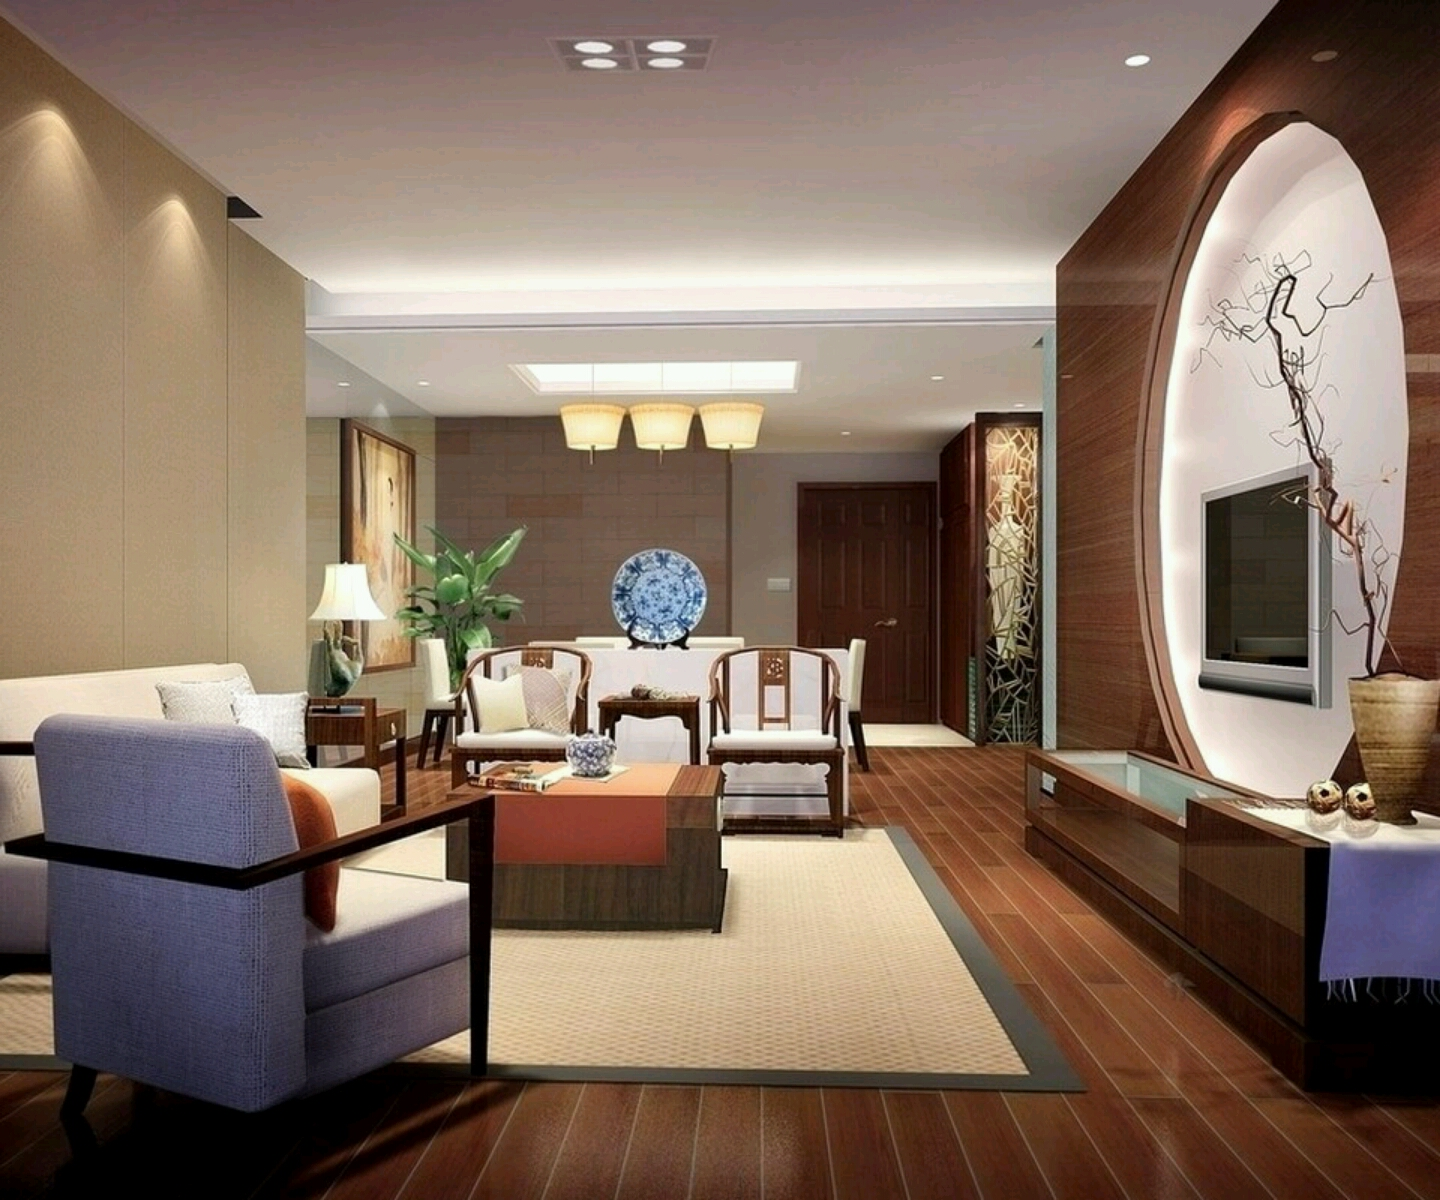 Luxury homes interior decoration living room designs ideas for New room decoration ideas